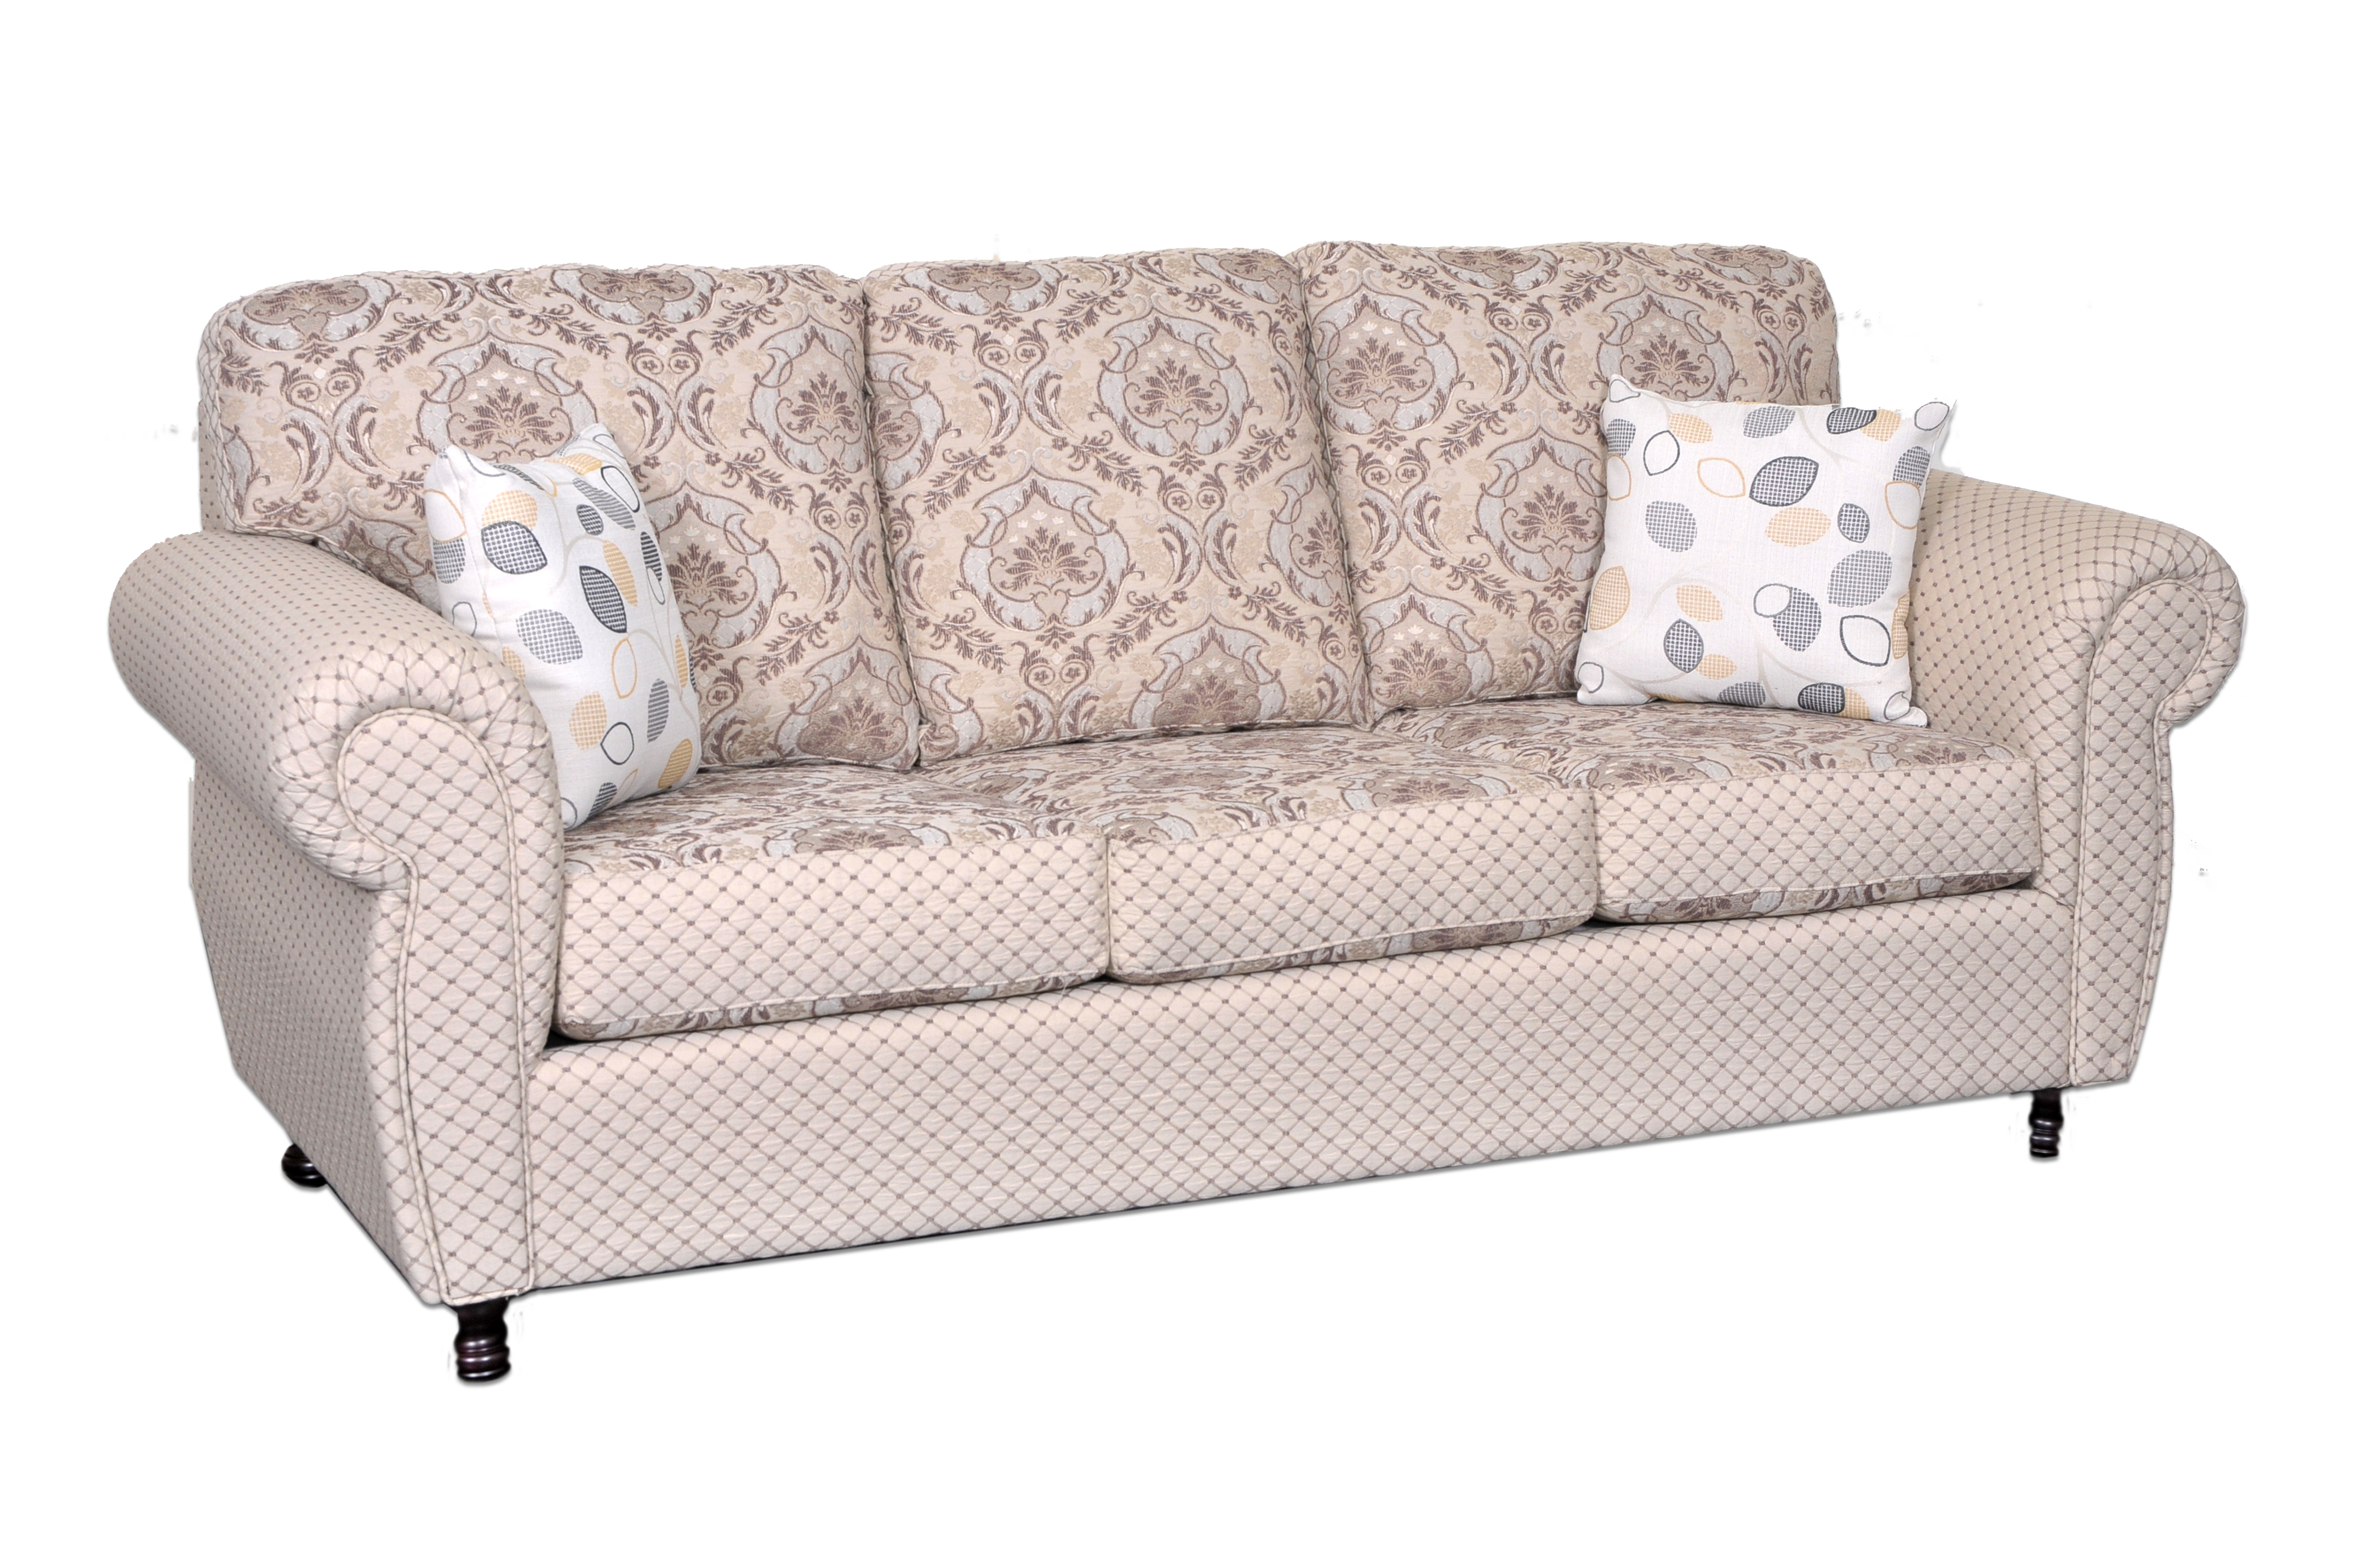 Fresh sectional sofa halifax sectional sofas for Furniture covers halifax